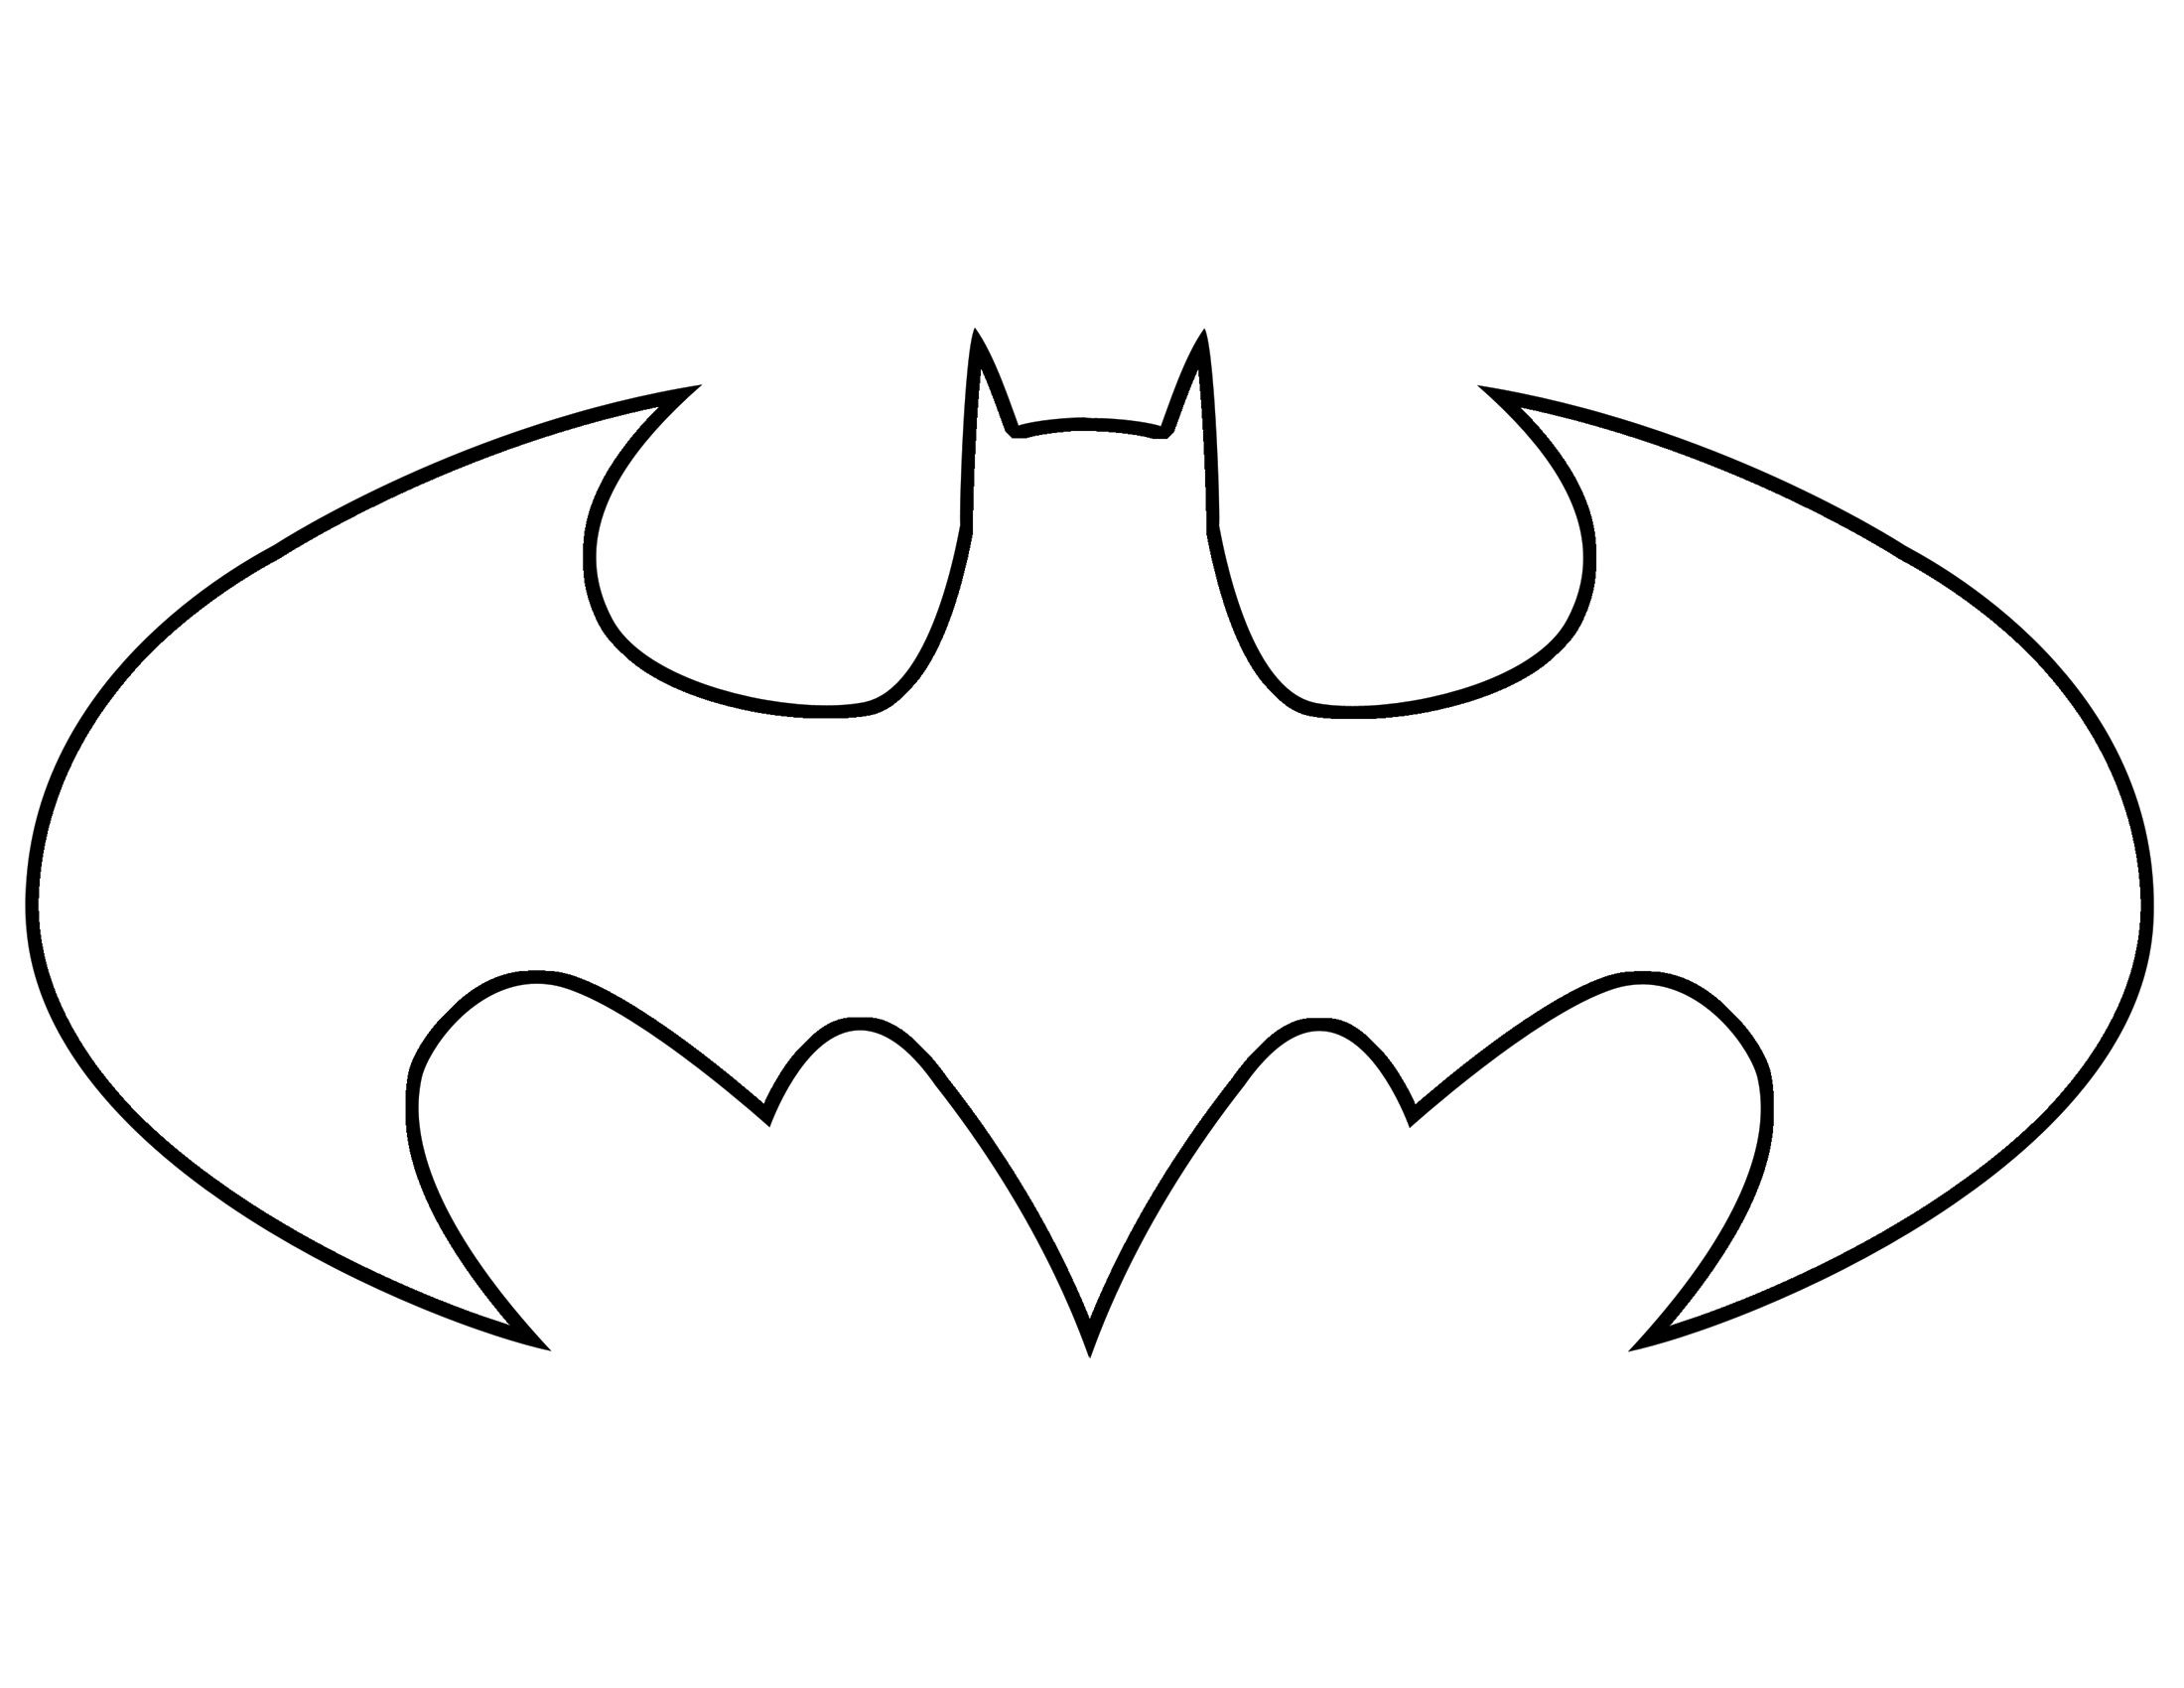 free pumpkin stencils | ... stencils provided below plus batwoman ...